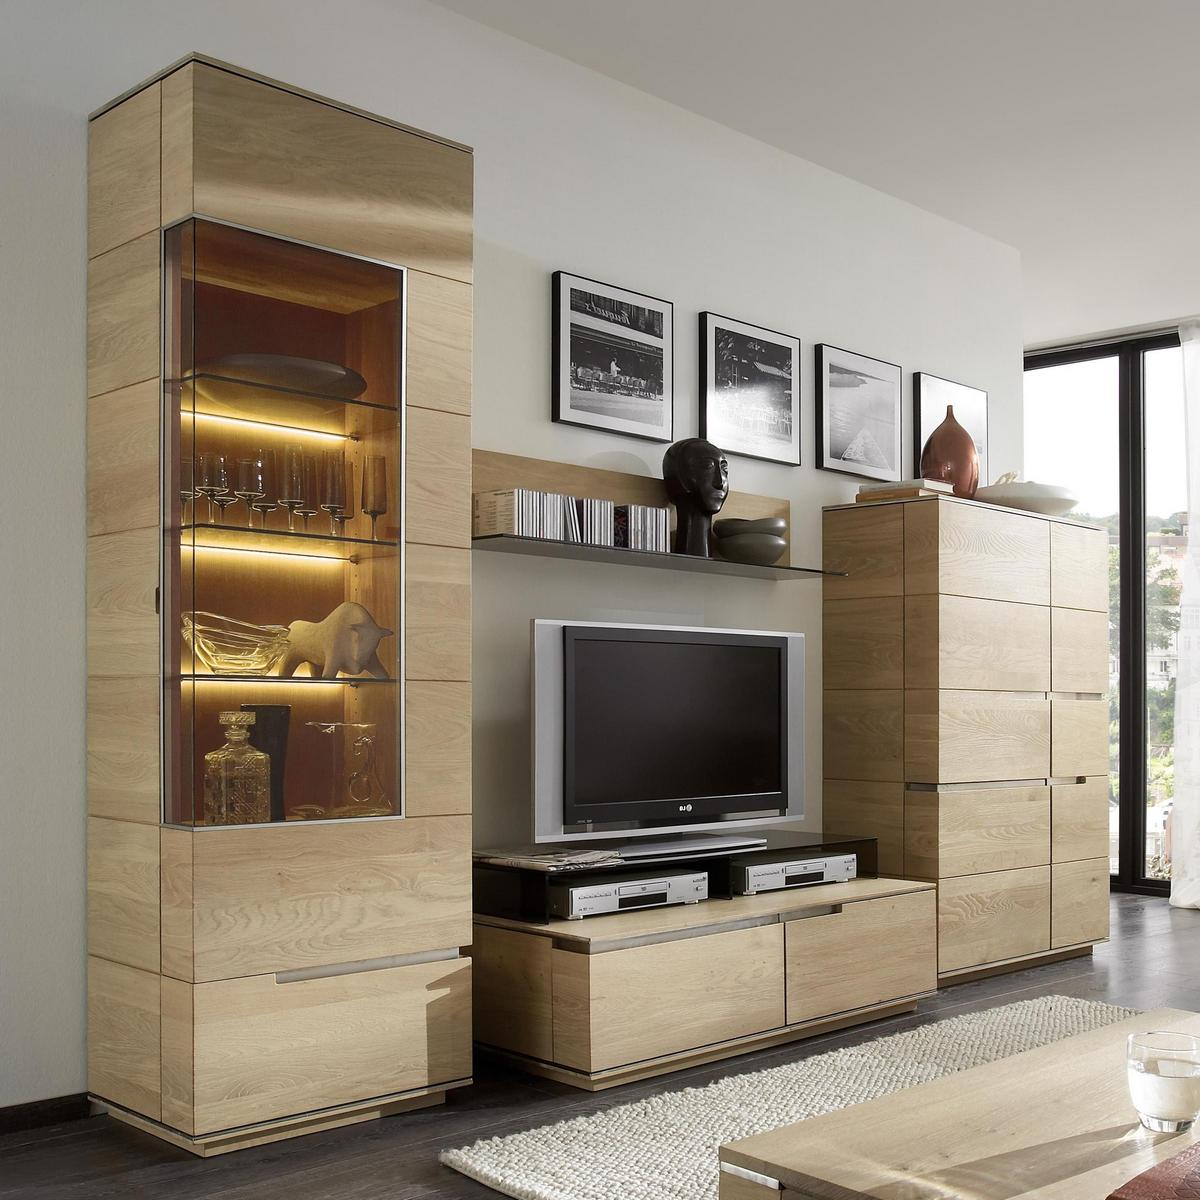 wohnzimmerm bel anbauwand wildeiche massiv geb rstet bianco ge lt acerro. Black Bedroom Furniture Sets. Home Design Ideas